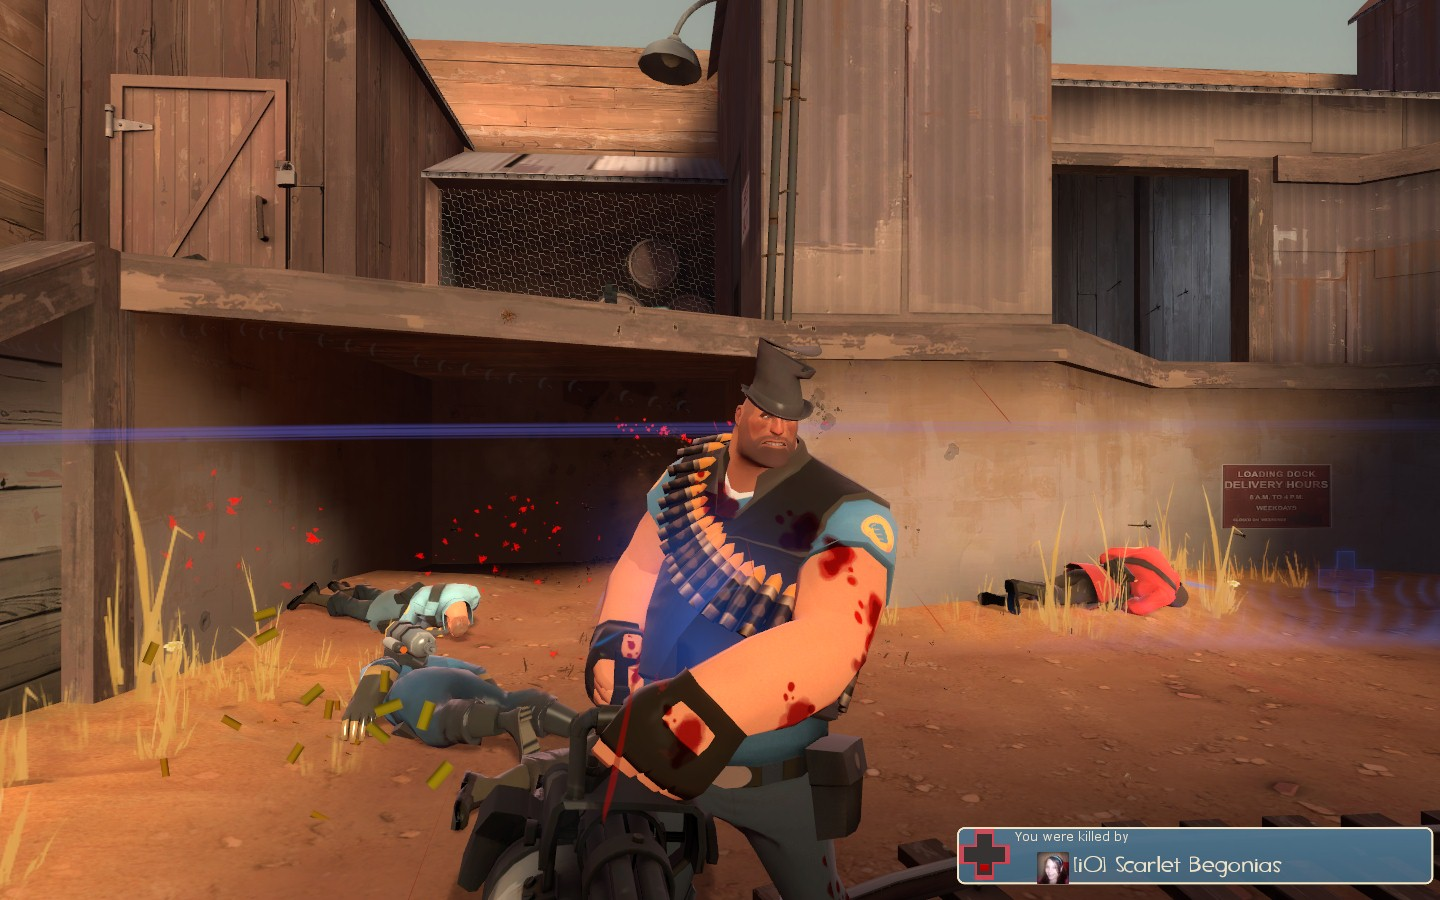 Team_Fortress2_Heavy_Arrow_Head.jpg